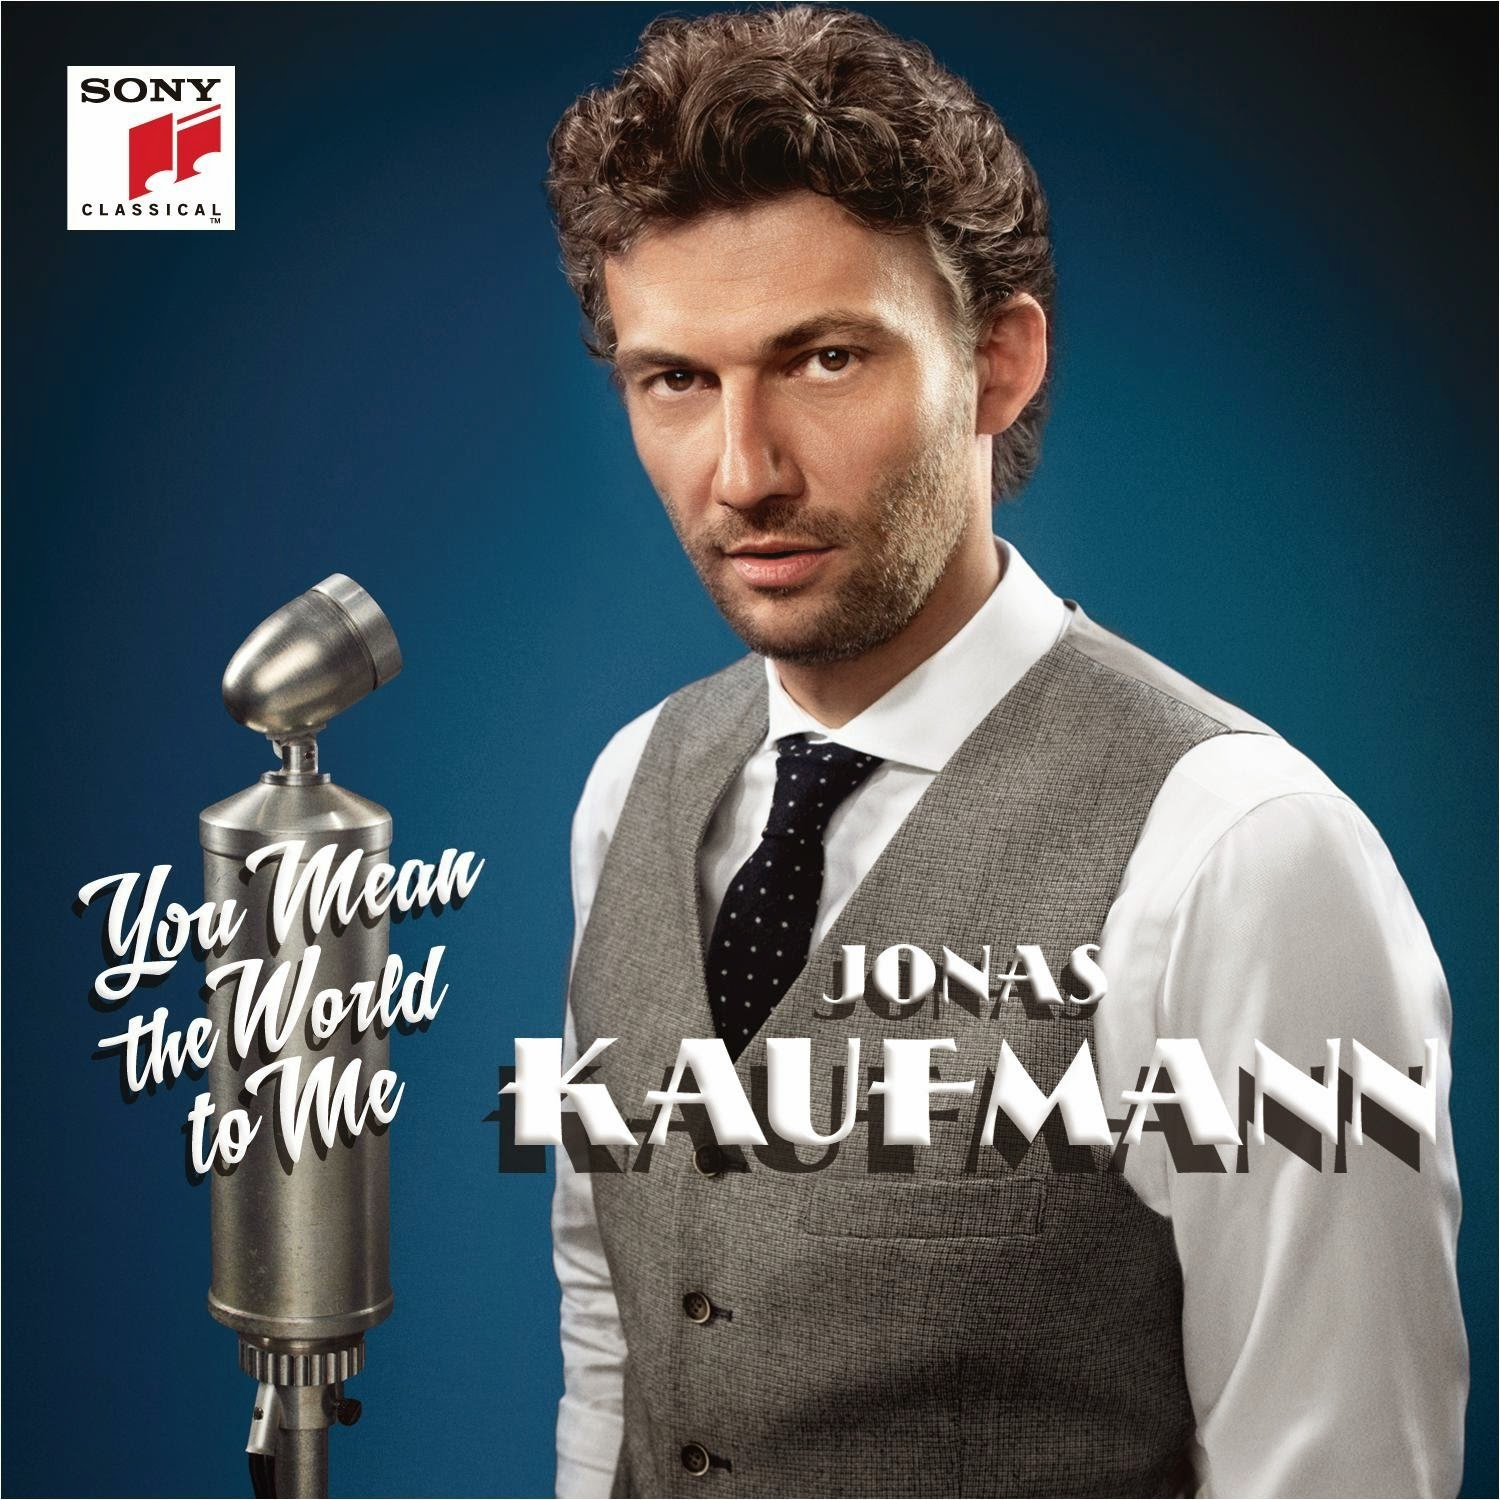 You Mean the World to Me - Jonas Kaufmann - Sony